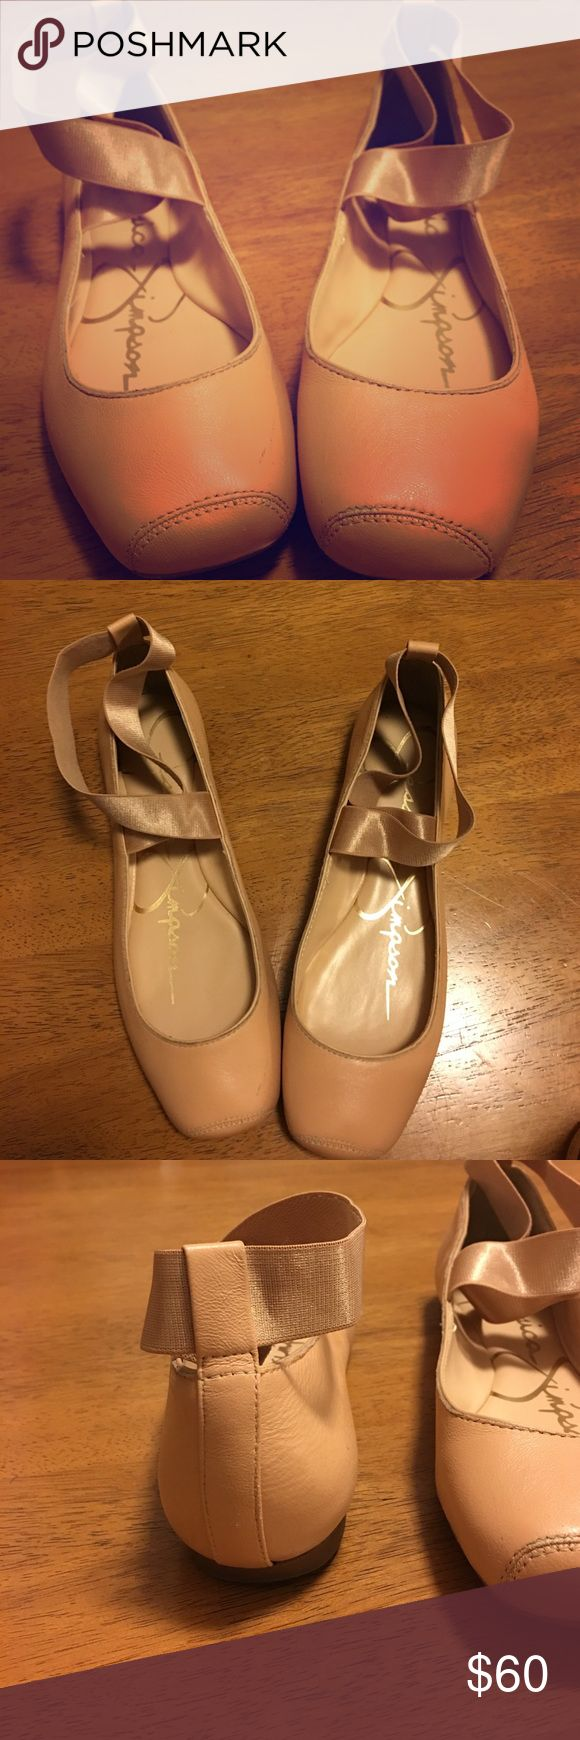 Jessica Simpson ballet flats Pink/nude ballet flats with cross straps. Super comfy and only worn once! Jessica Simpson Shoes Flats & Loafers